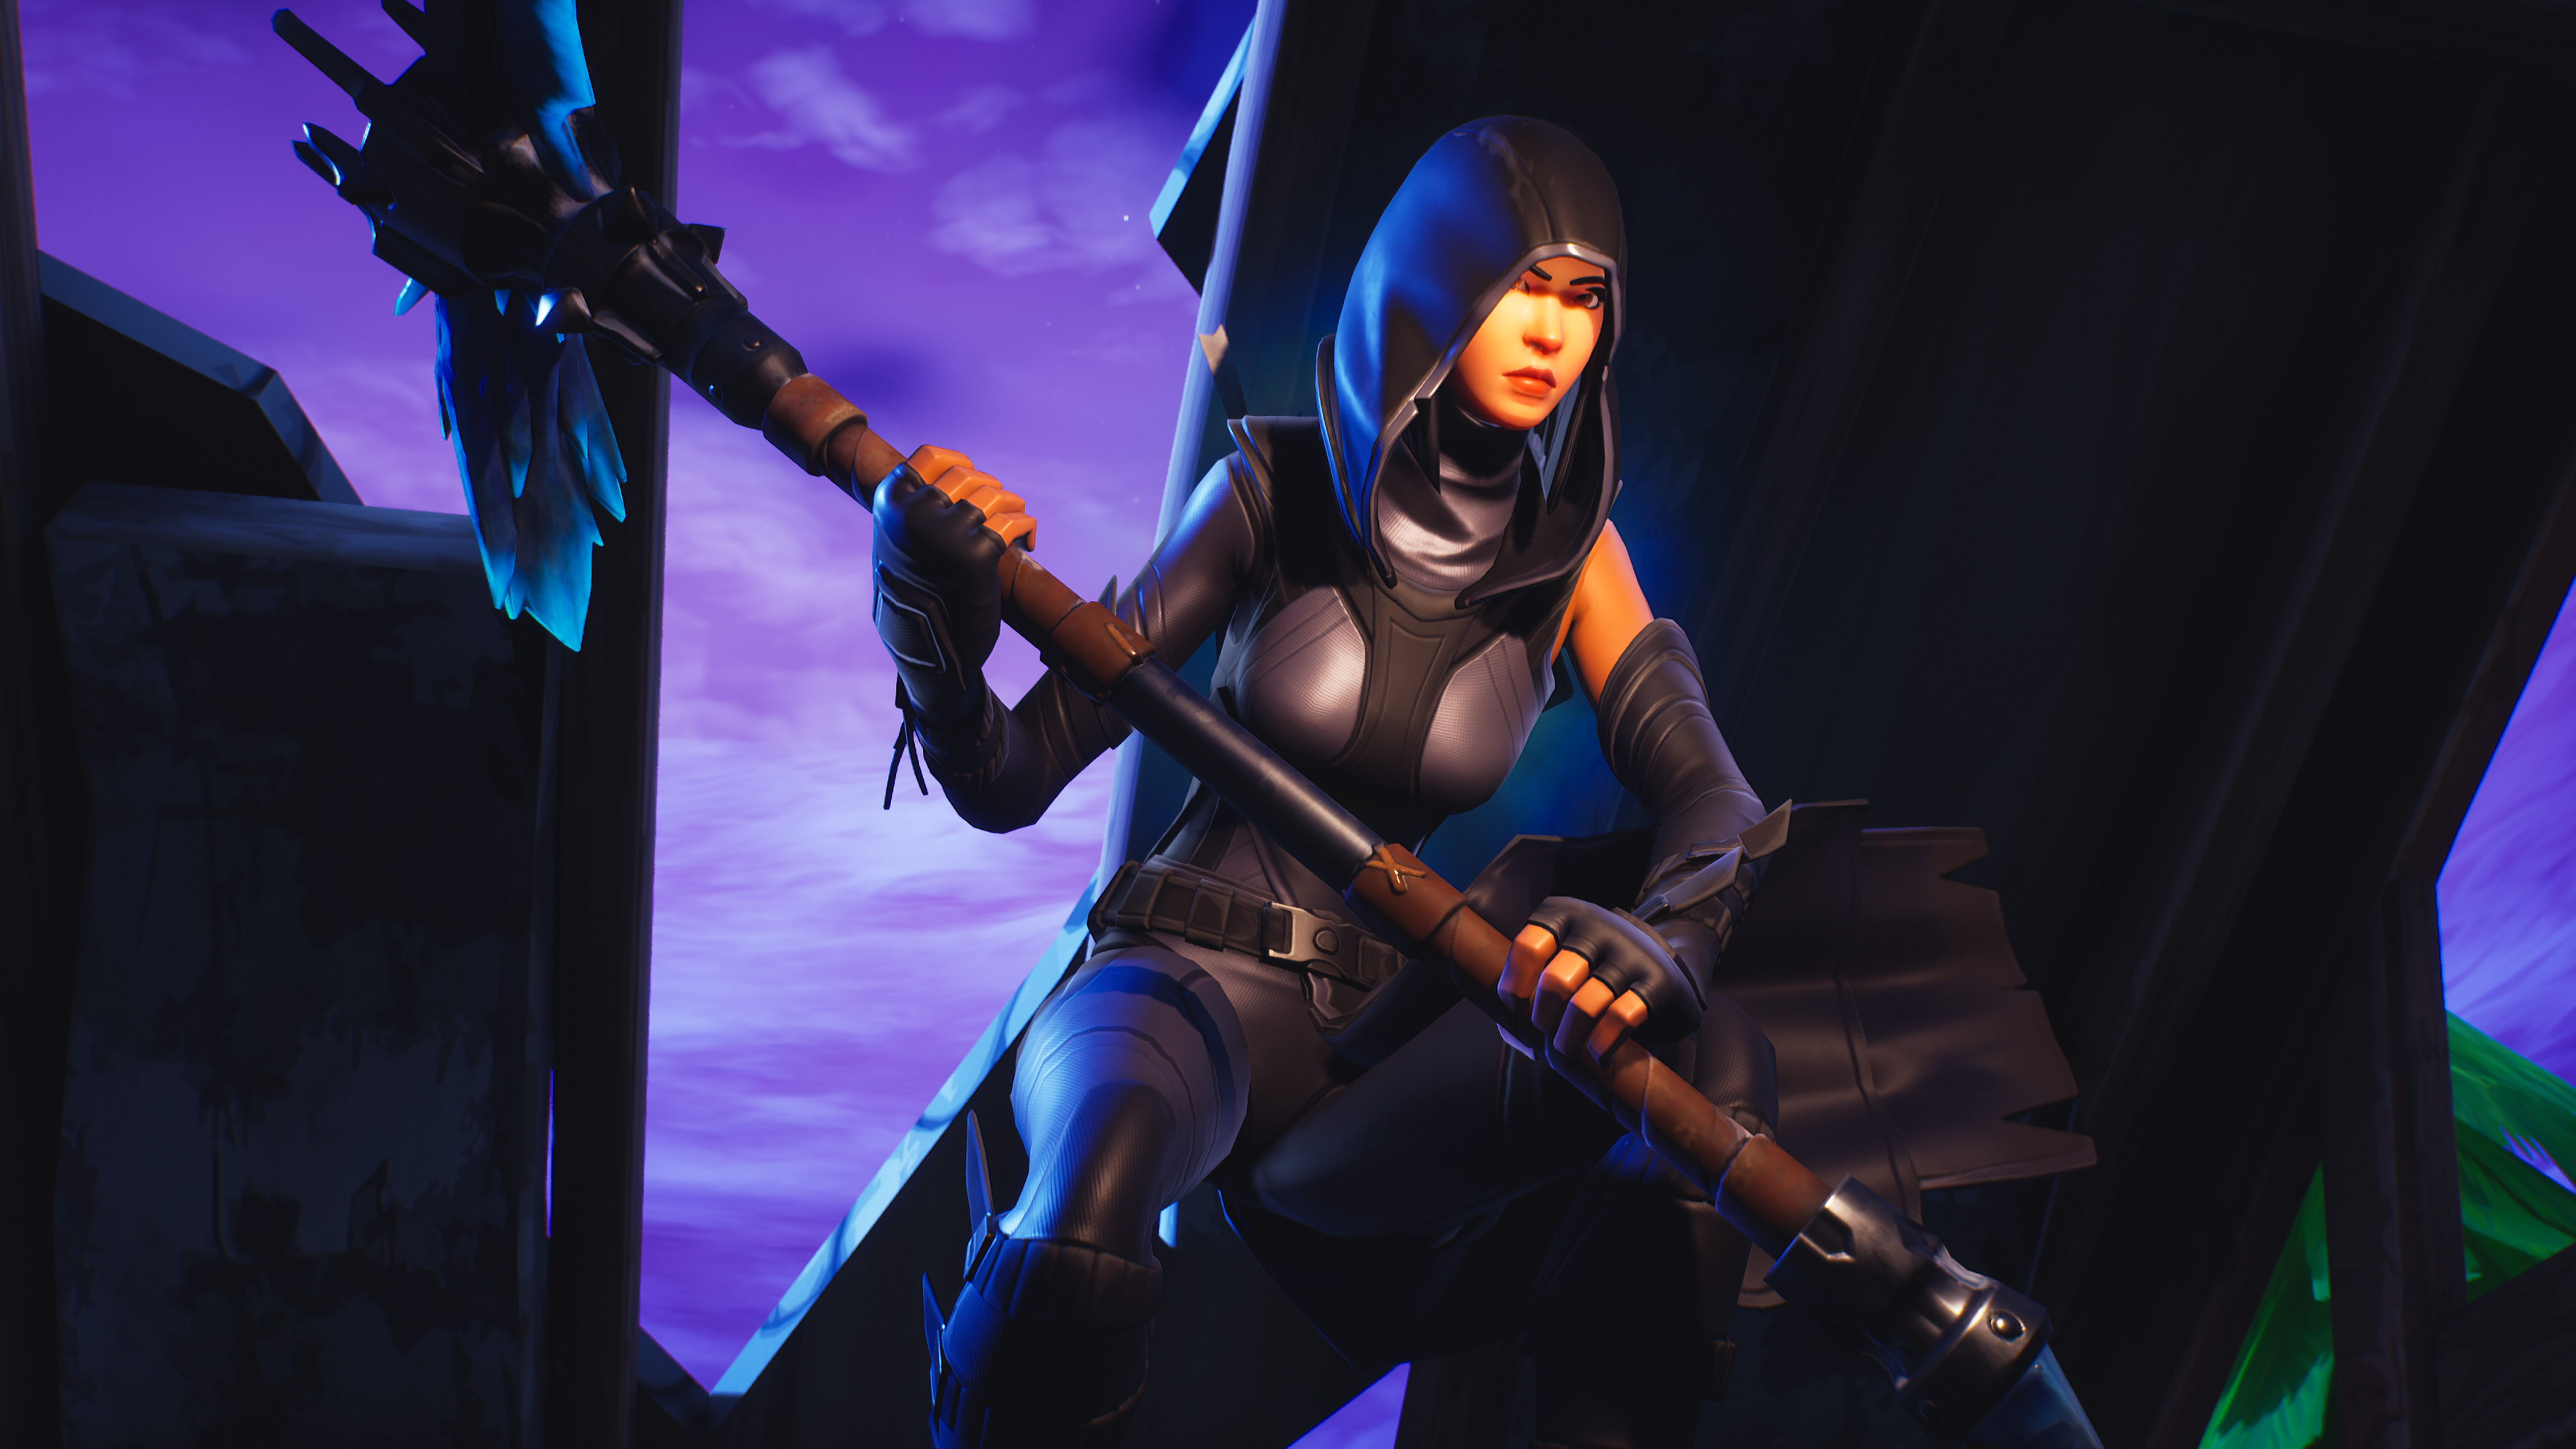 Desktop Wallpaper 2018 Video Game Fortnite Art Hd: Fate Fortnite Battle Royale 4k, HD Games, 4k Wallpapers